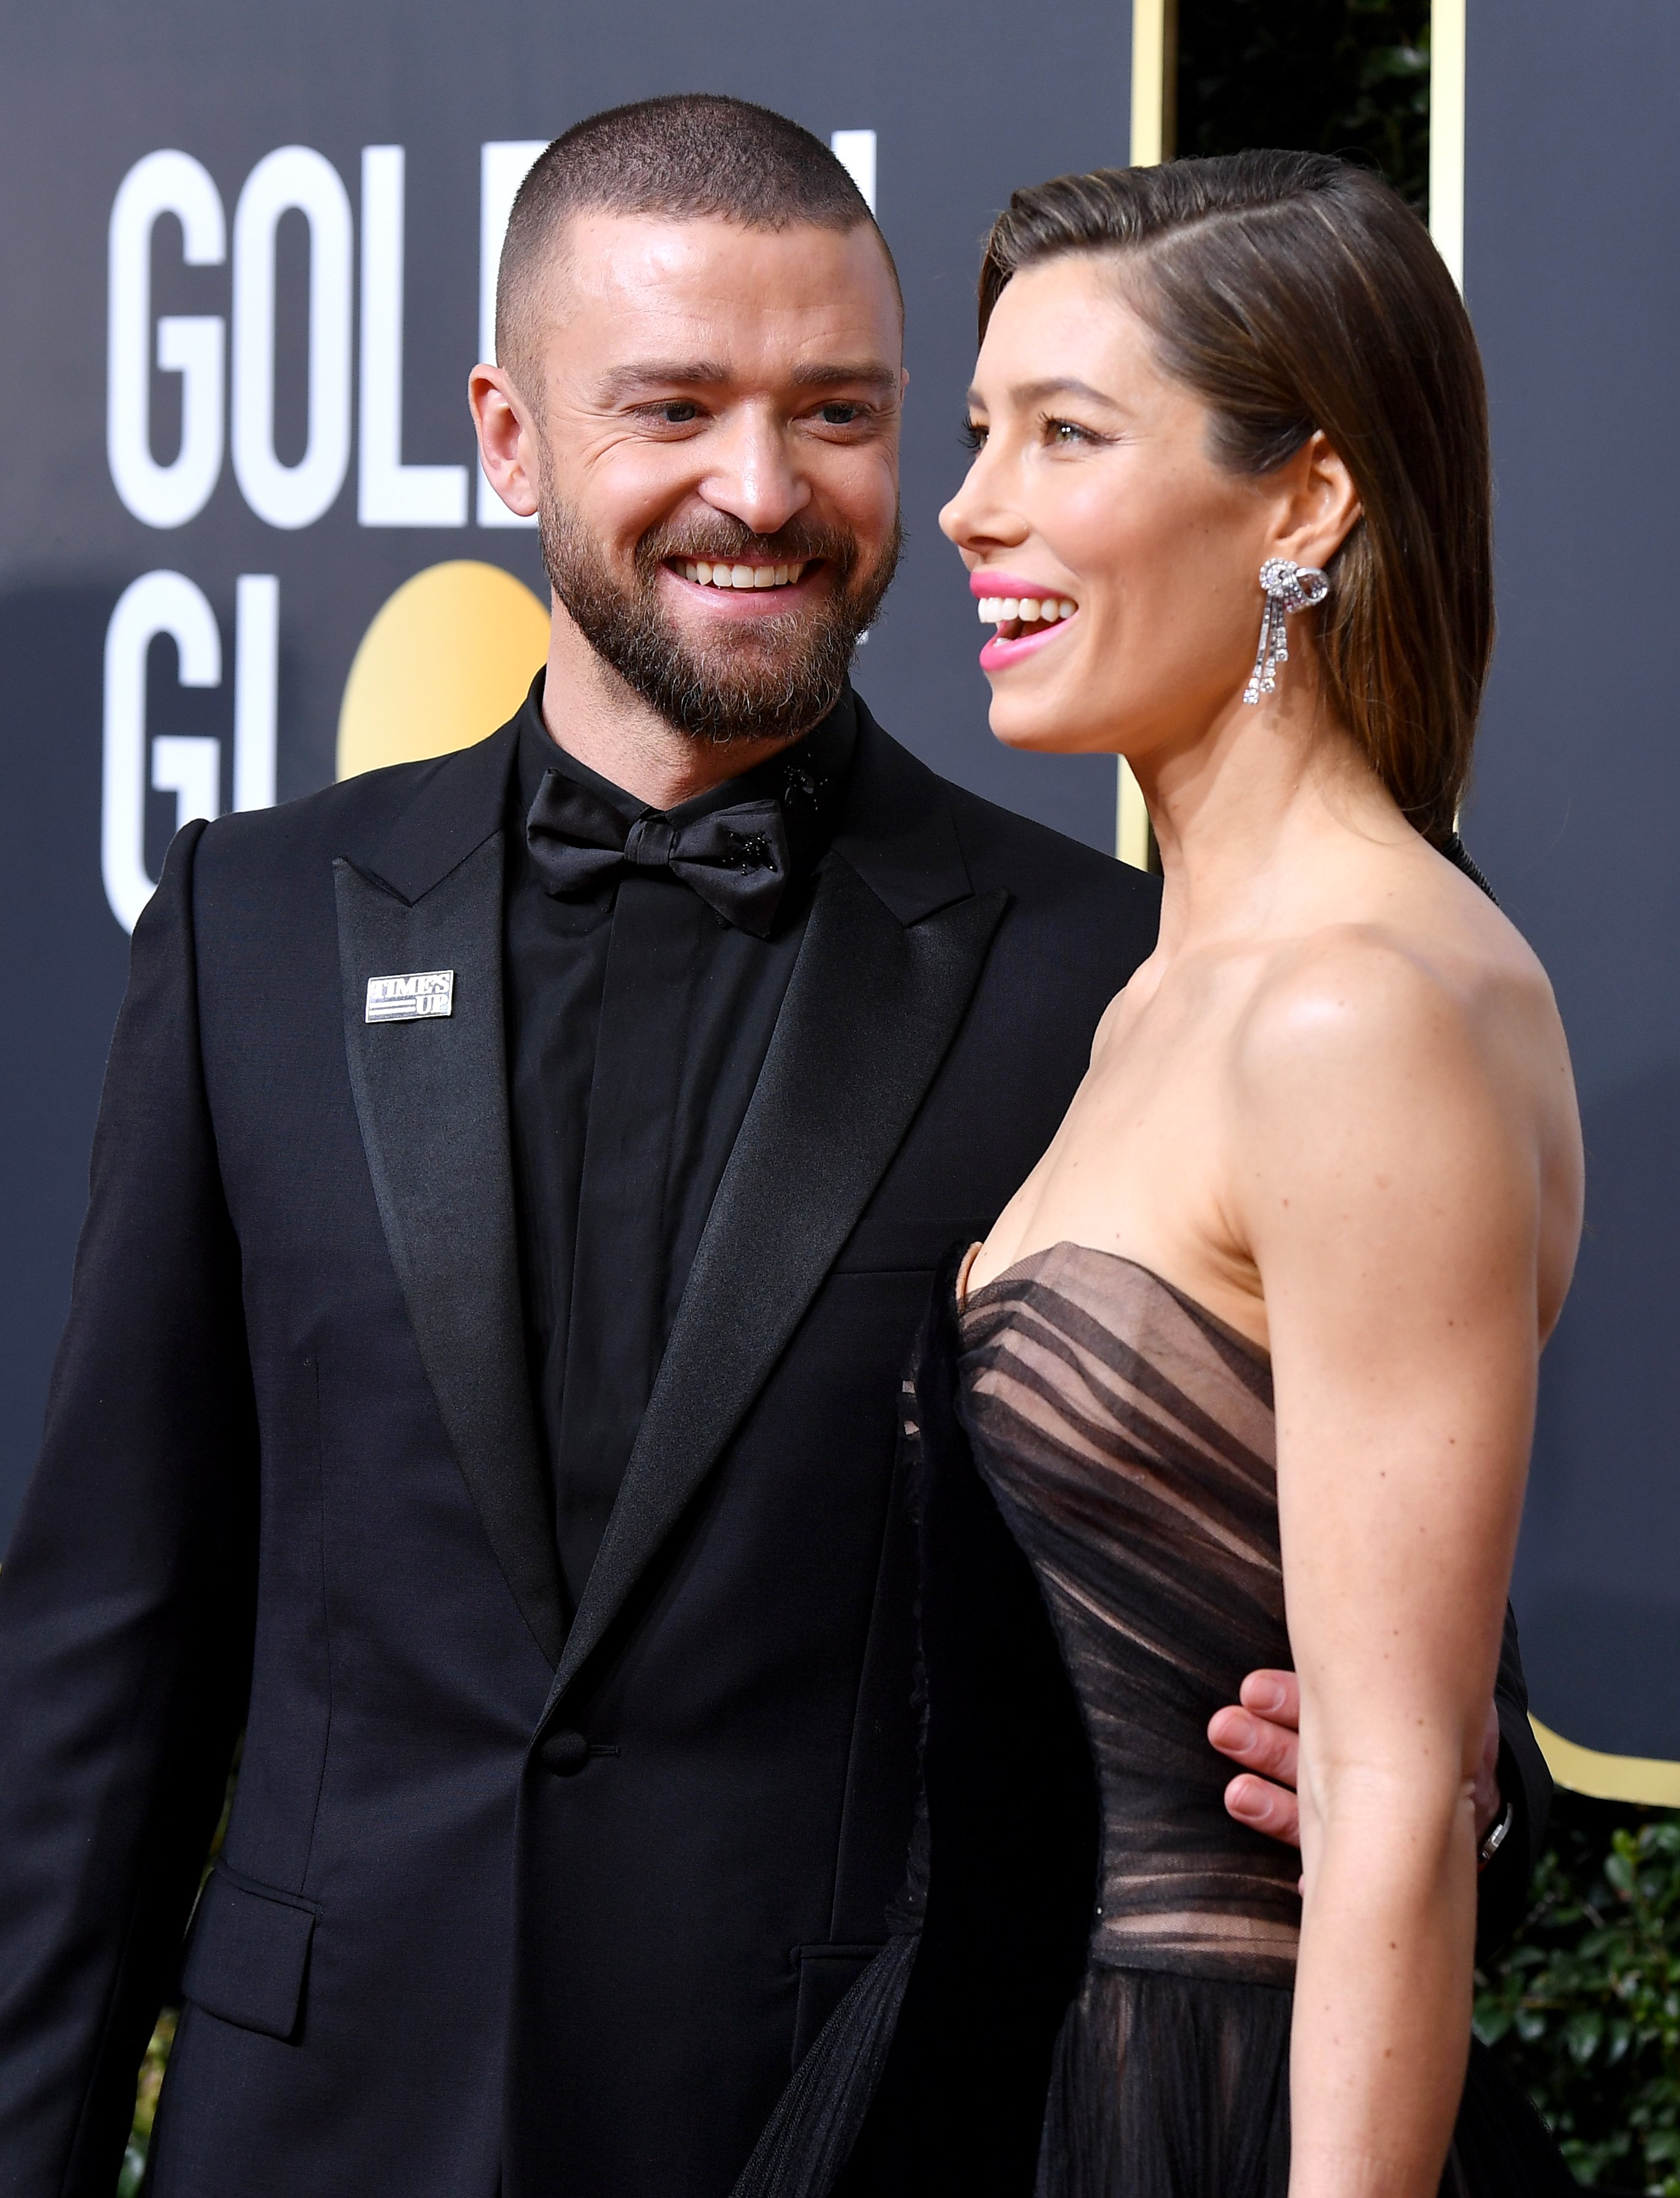 Jessica Biel and Justin Timberlake pictured at The 75th Golden Globe Awards, 2018, California.   Photo: Getty Images